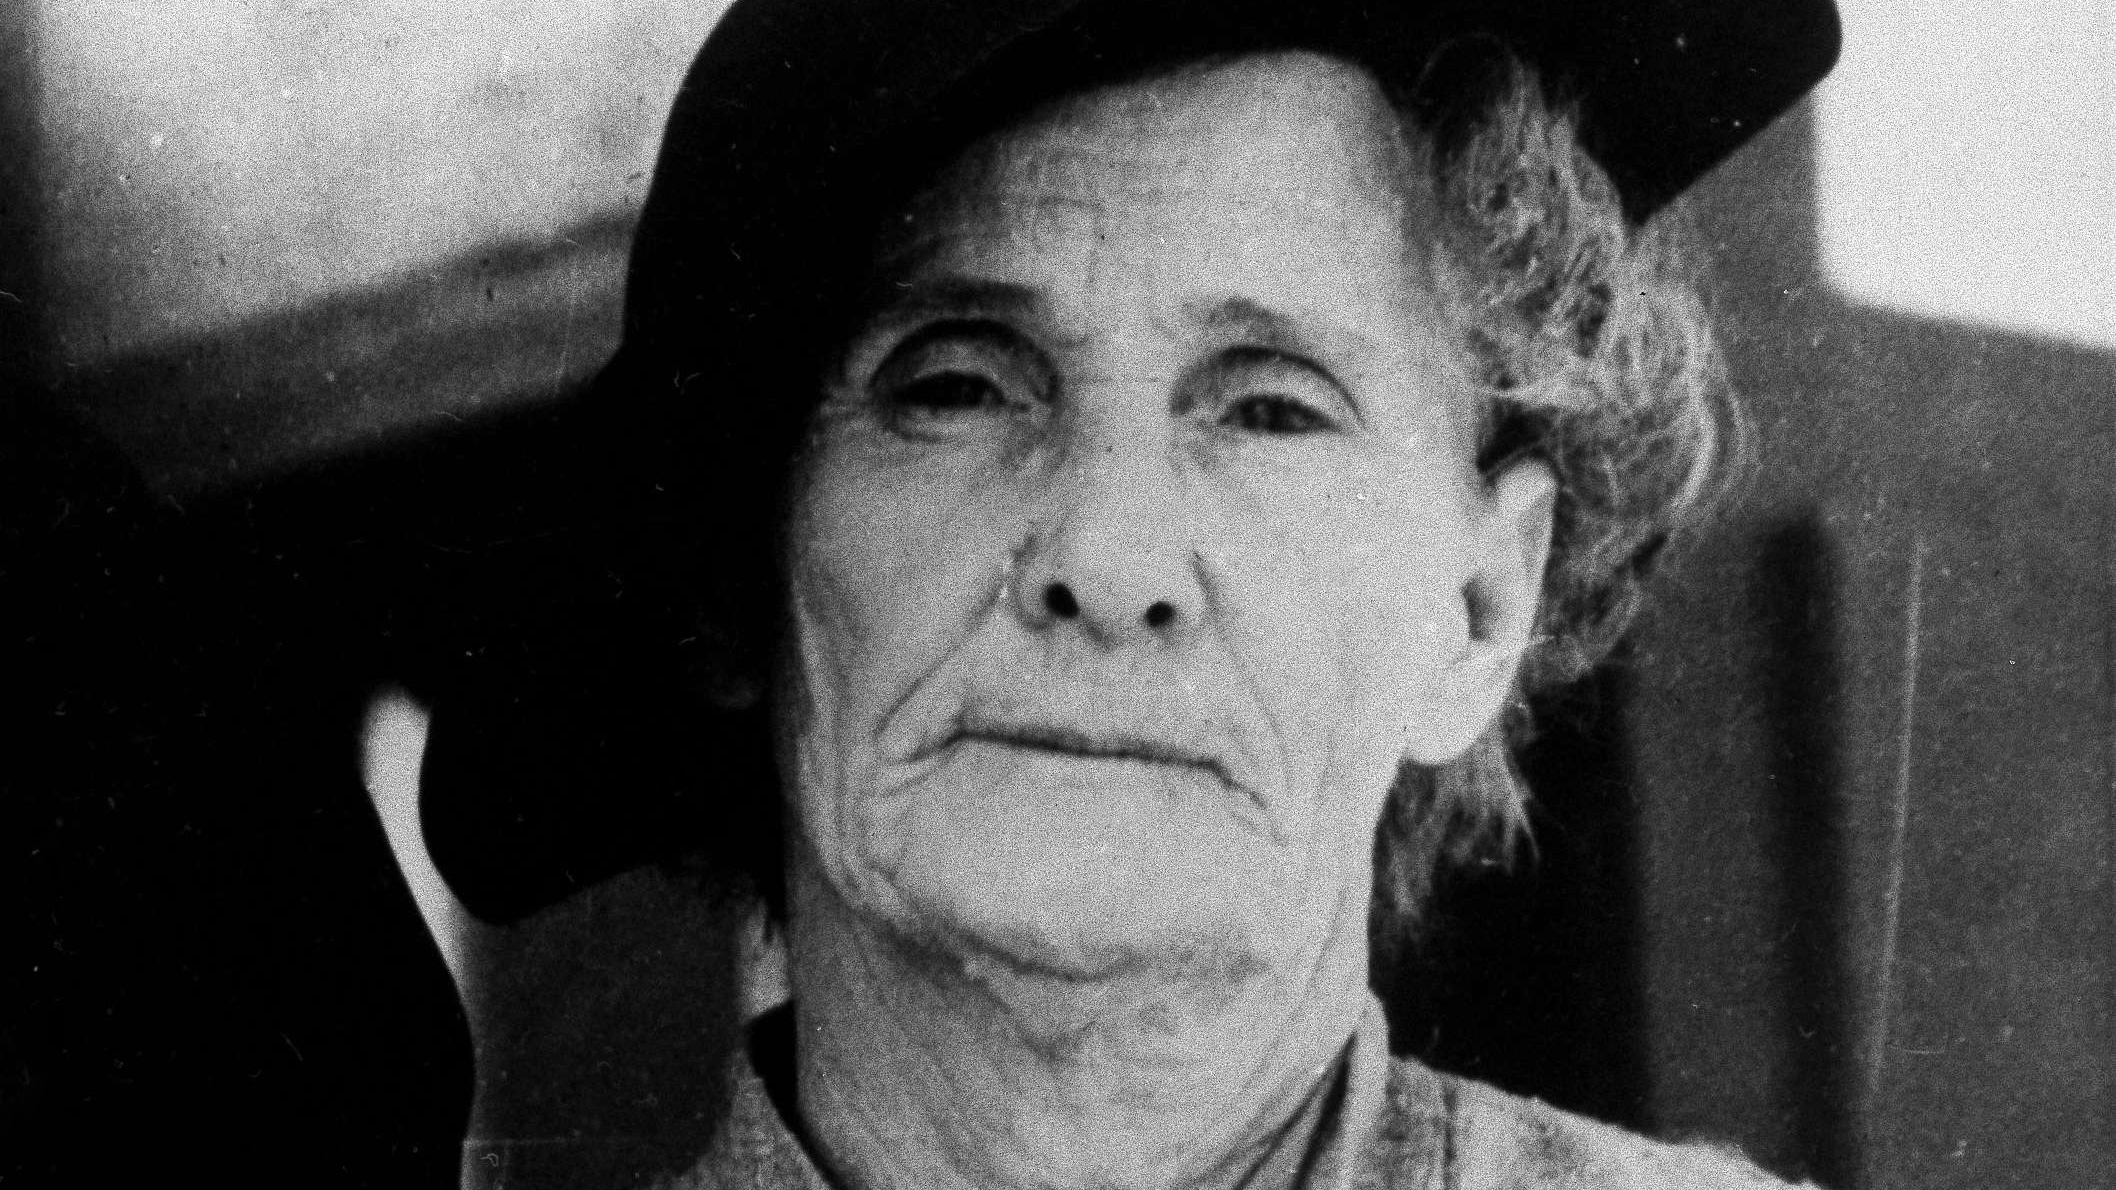 Bonnie Wasn't Clyde's Only Female Accomplice